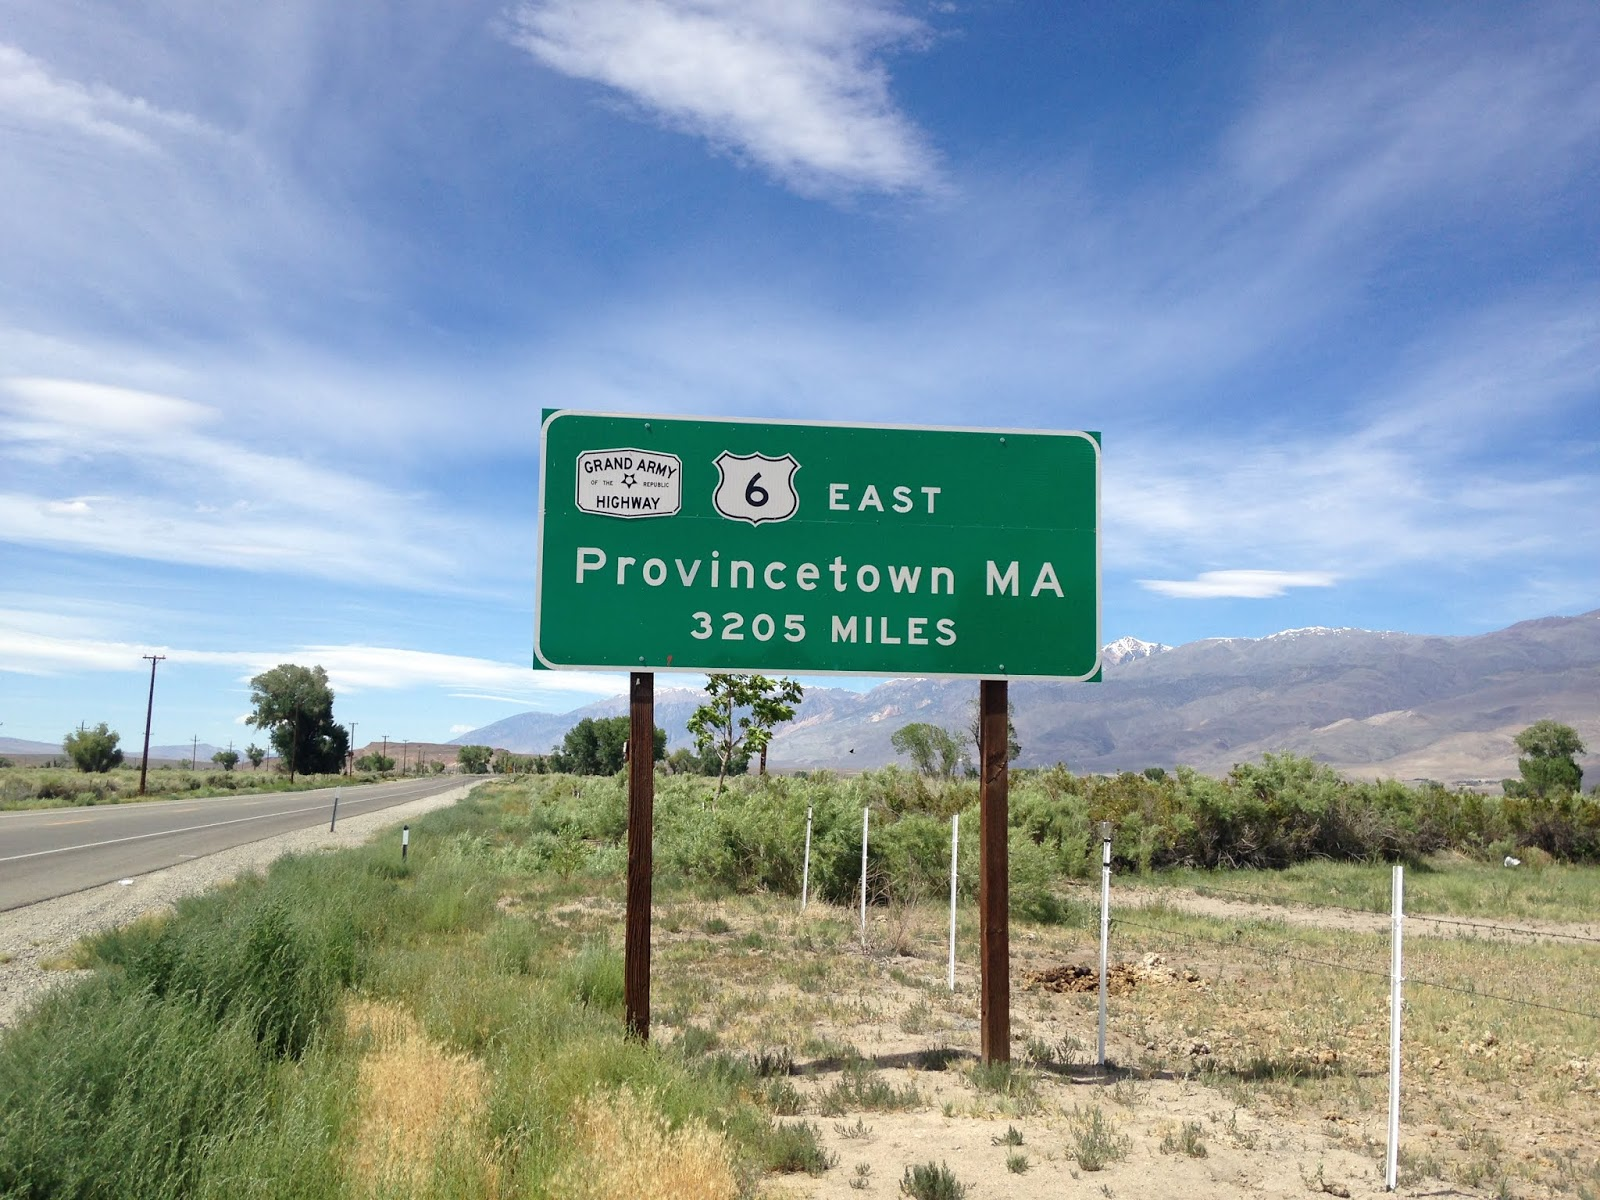 back in june of 2016 i visited the western terminus of us route 6 at us route 395 located in bishop california of inyo county on my way to laws depot